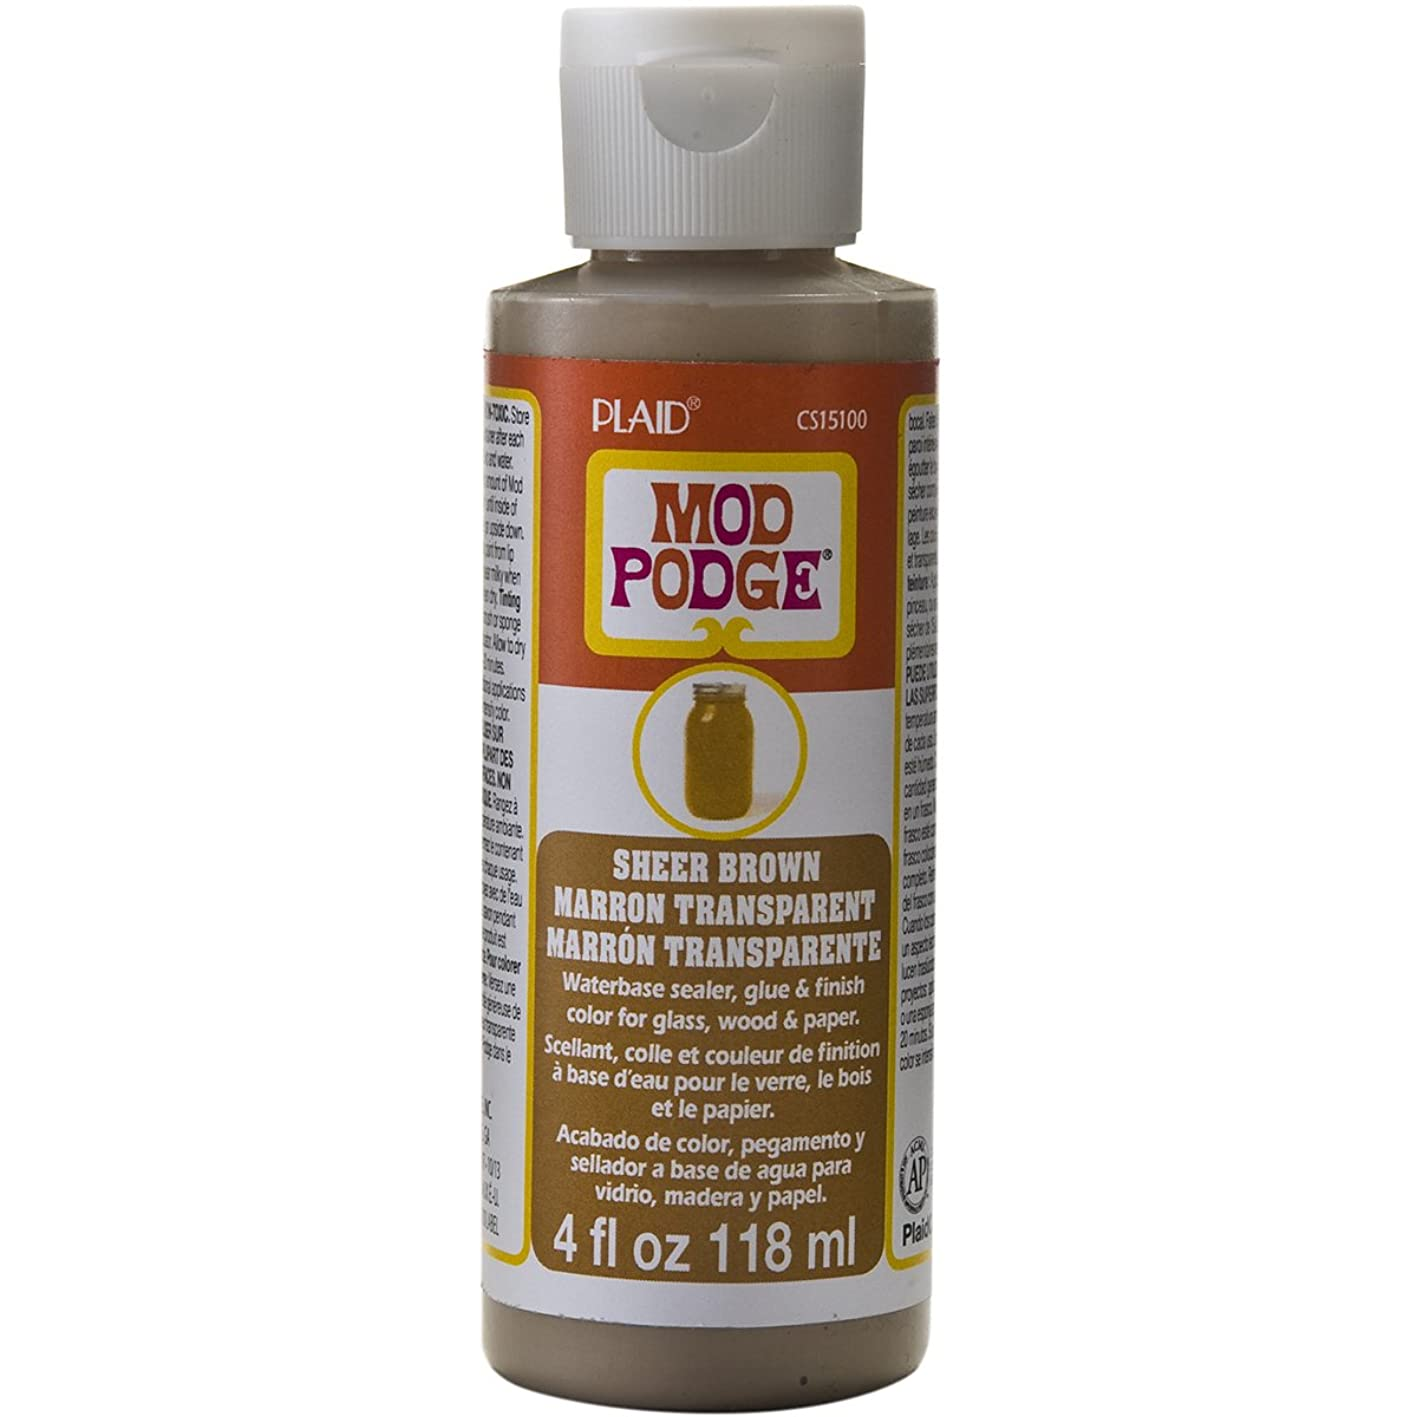 Mod Podge Waterbase Sealer, Glue and Finish Color in Assorted Colors (4-Ounce), CS15100 Sheer Brown lbedvtpwezj647